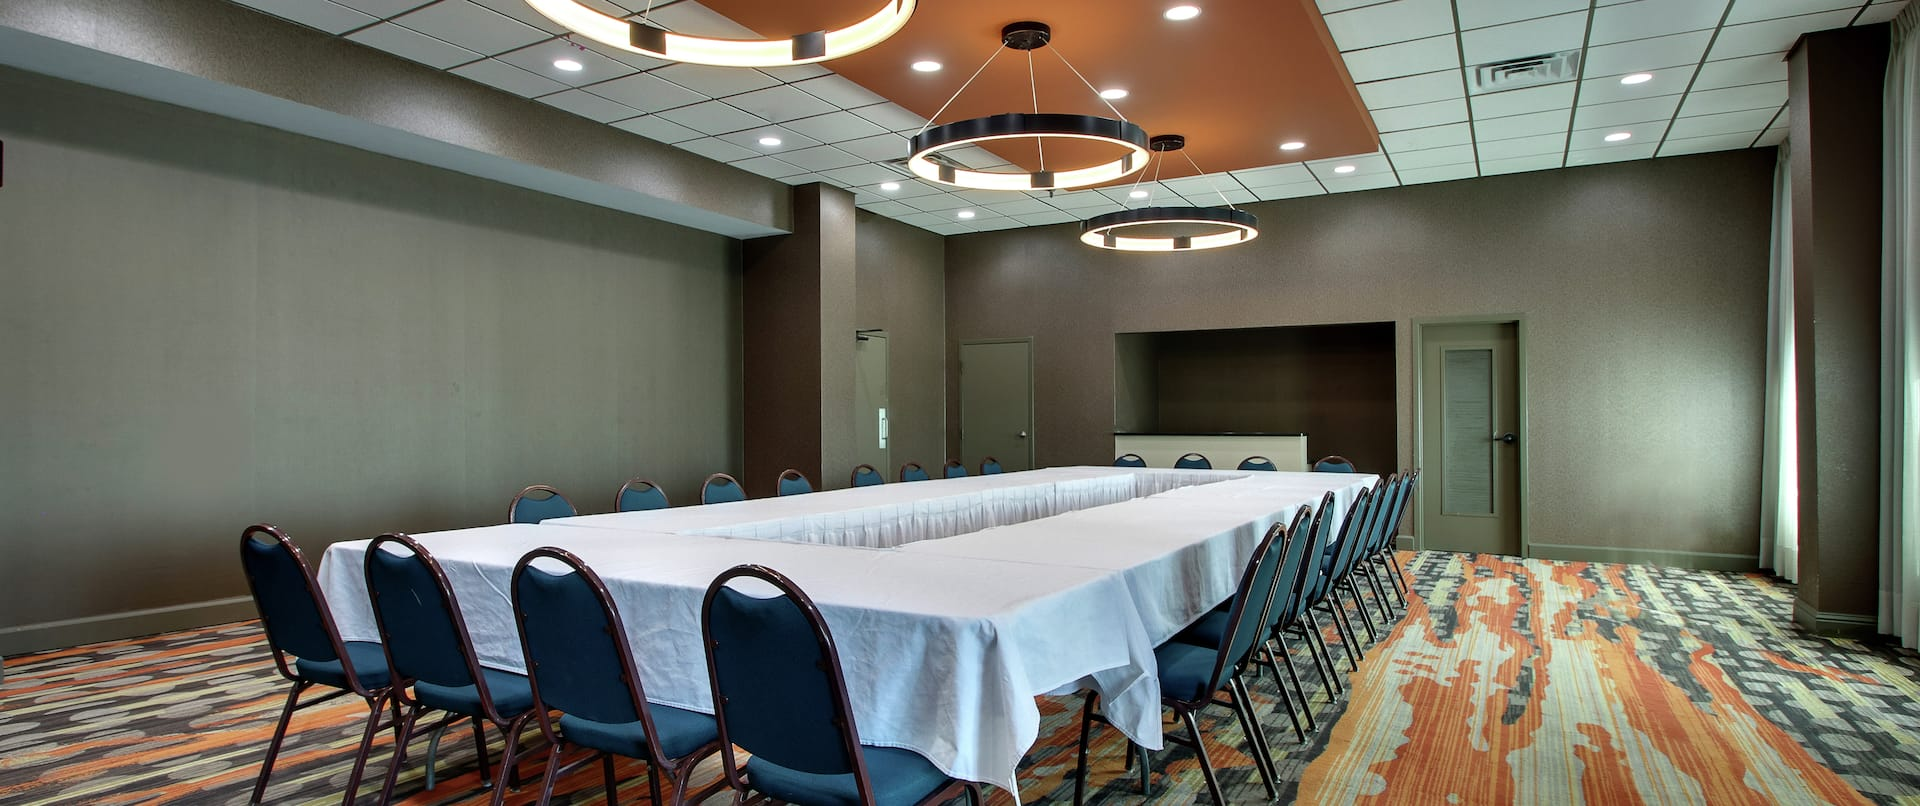 Wildcatter Meeting Room